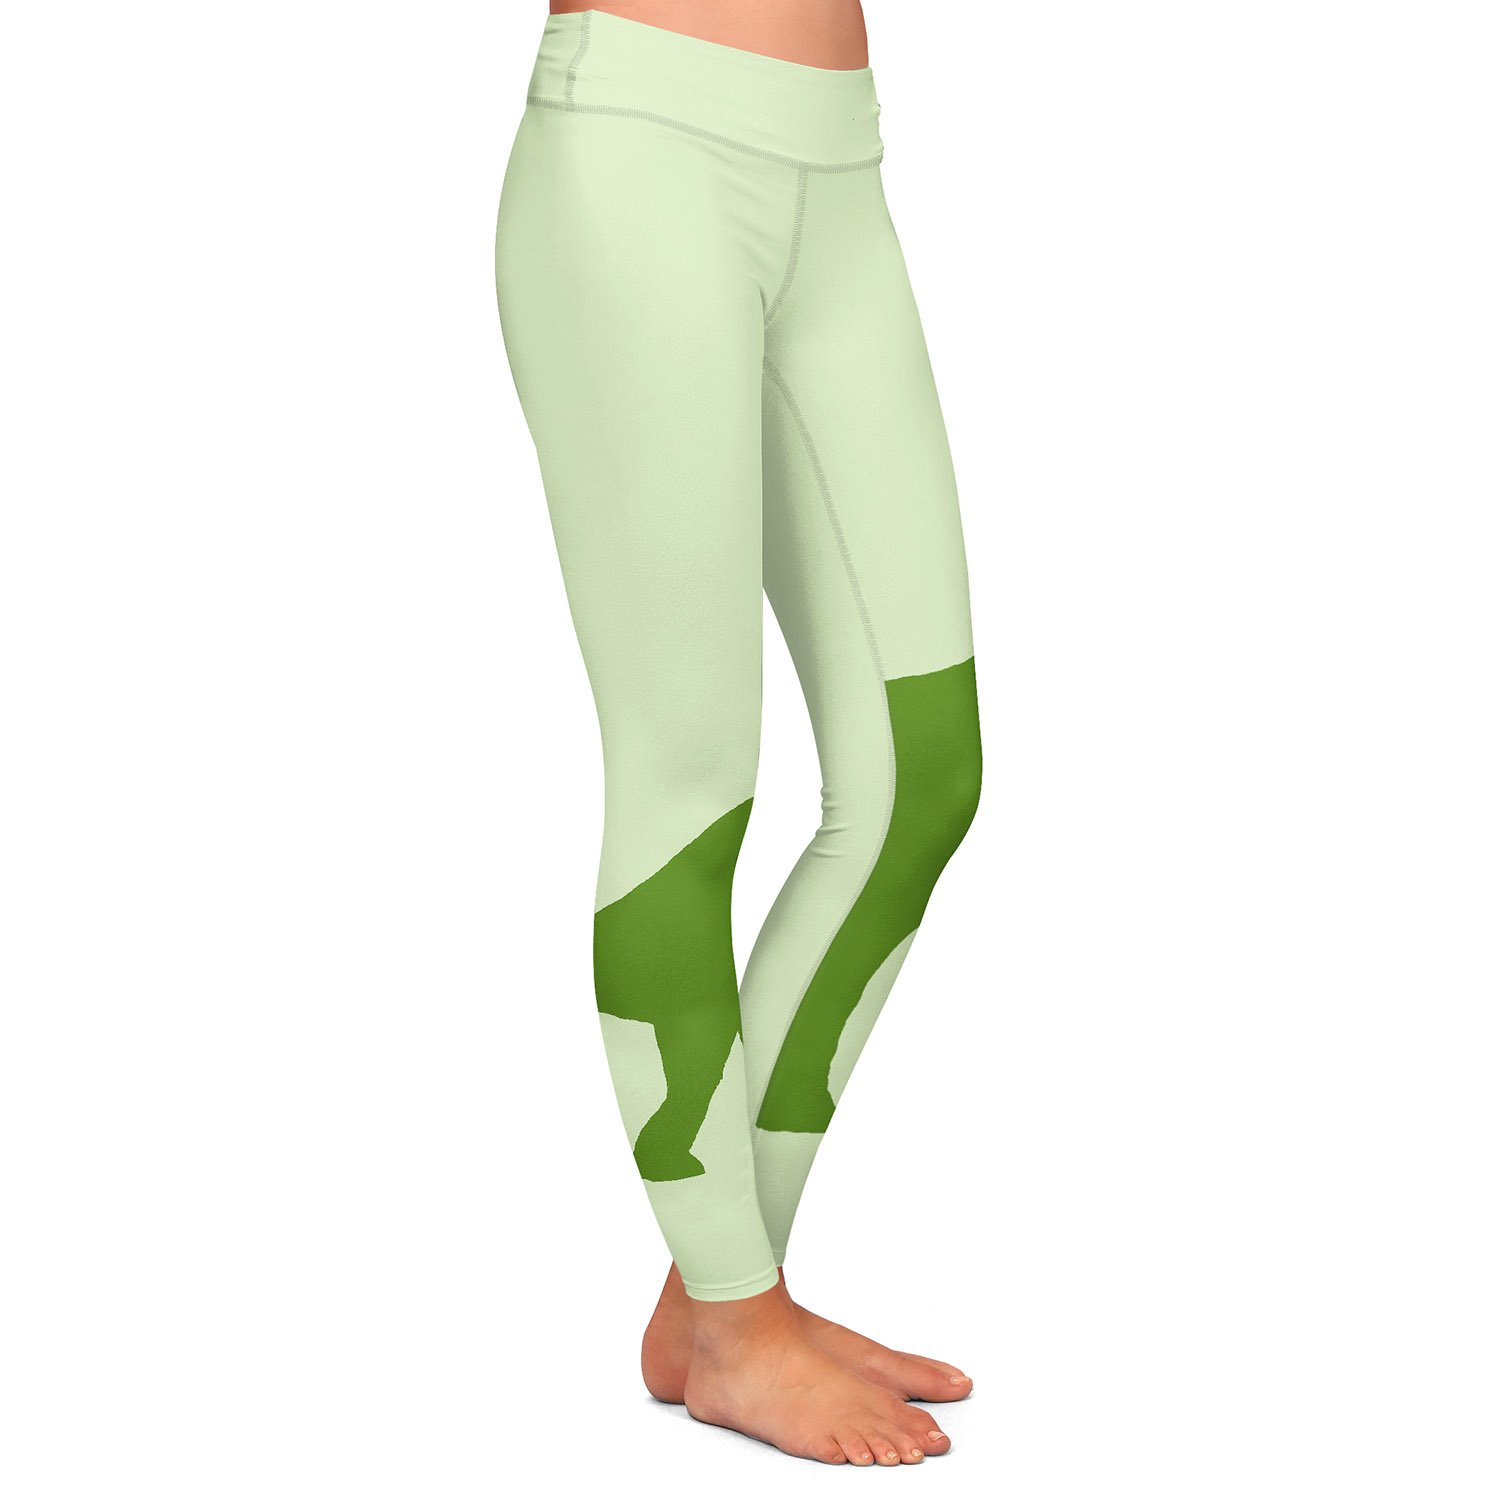 Athletic Yoga Leggings from DiaNoche by Catherine Holcombe Dinosaur I Green